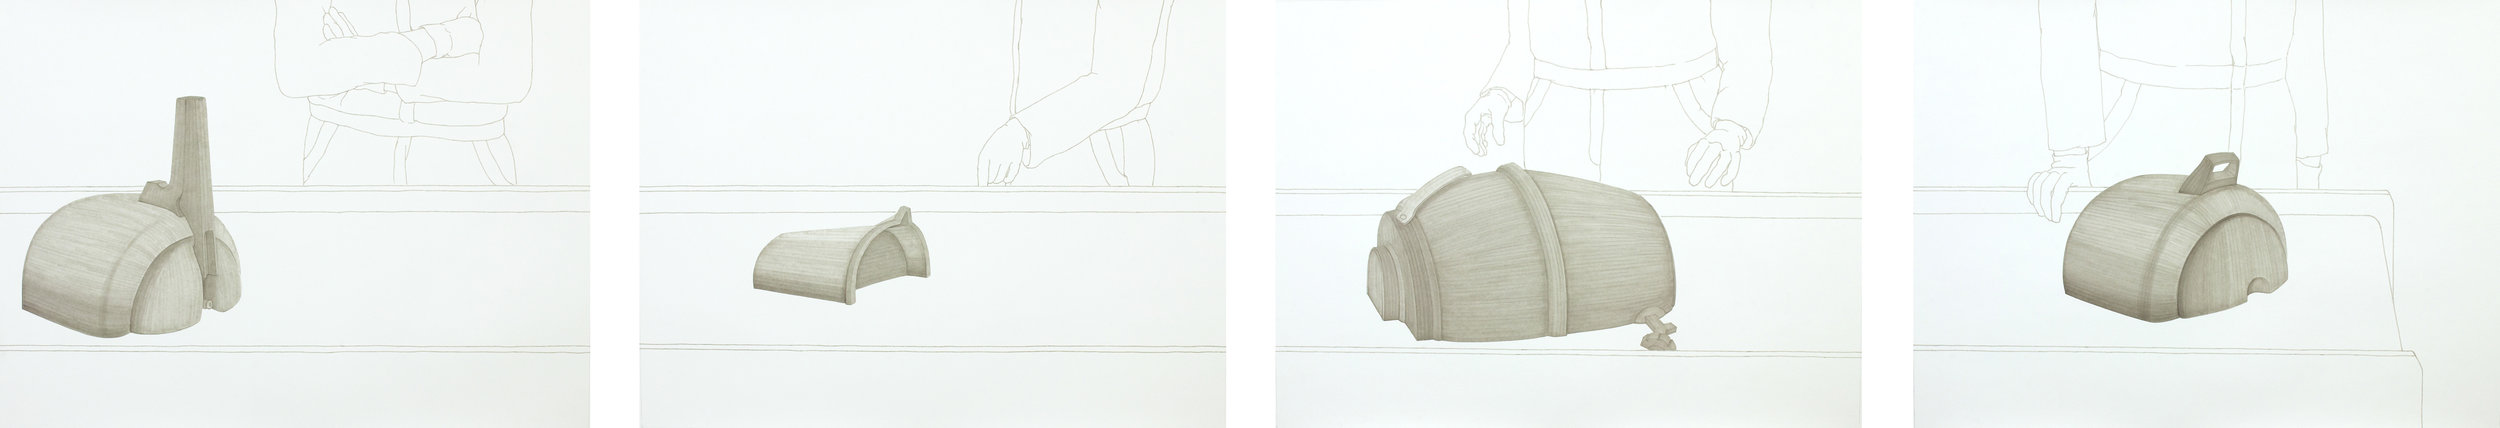 Mariam Suhail  Partial View of Partial Production 2013 Permanent marker on paper 4 drawings 96 x 70 cm (each)